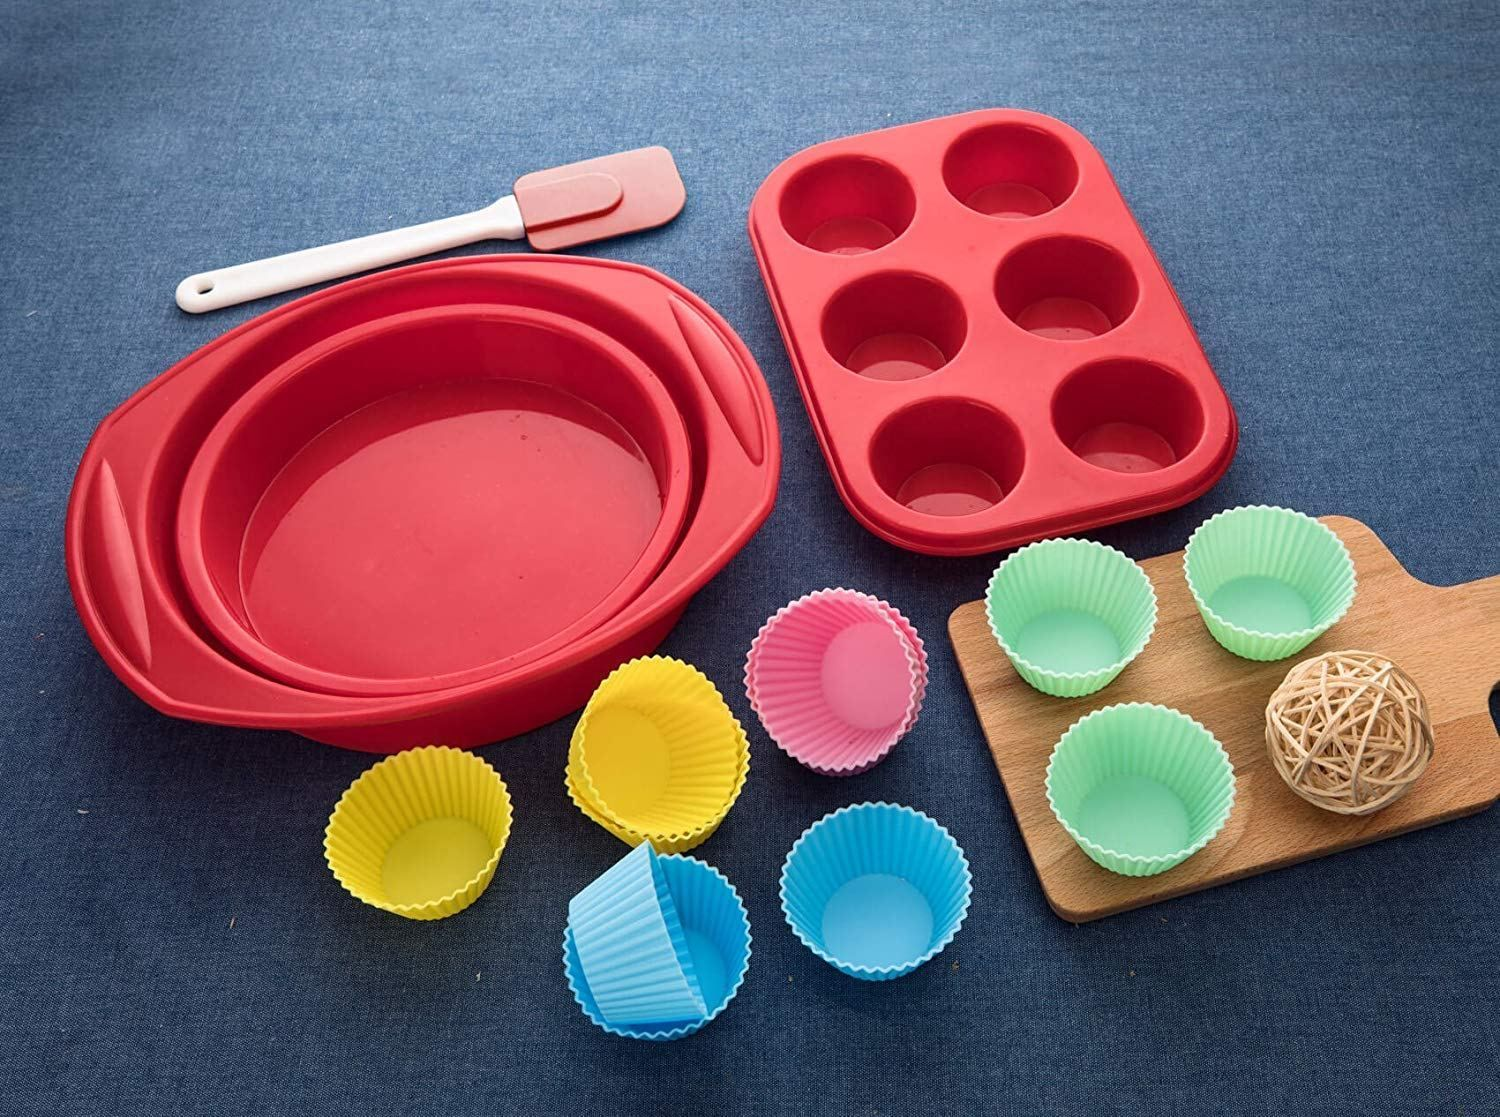 Aokinle Silicone Bakeware Set 16 Piece Baking Molds Non Stick